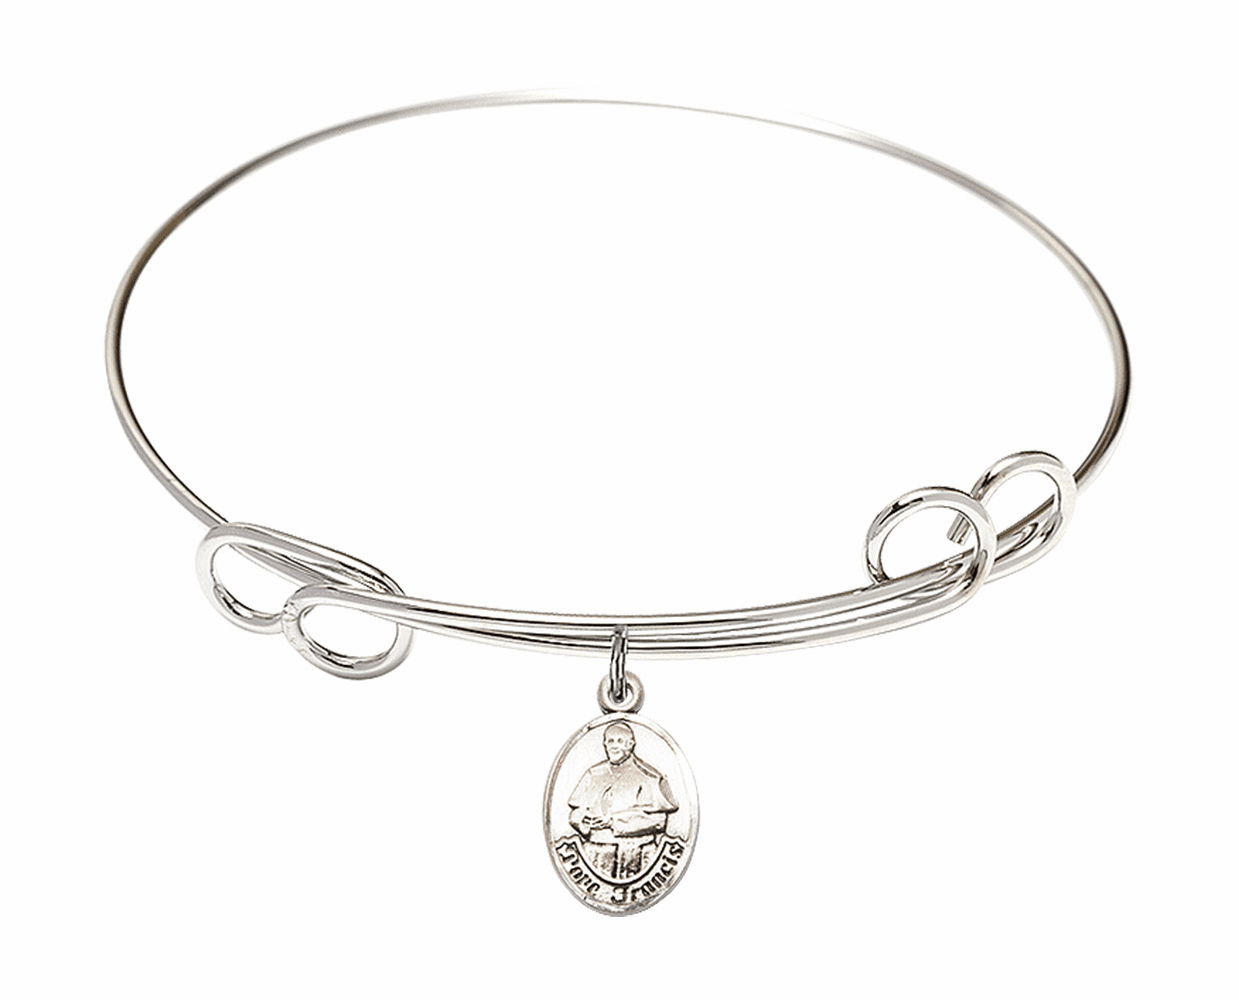 Round Loop Pope Francis Bangle Charm Bracelet by Bliss